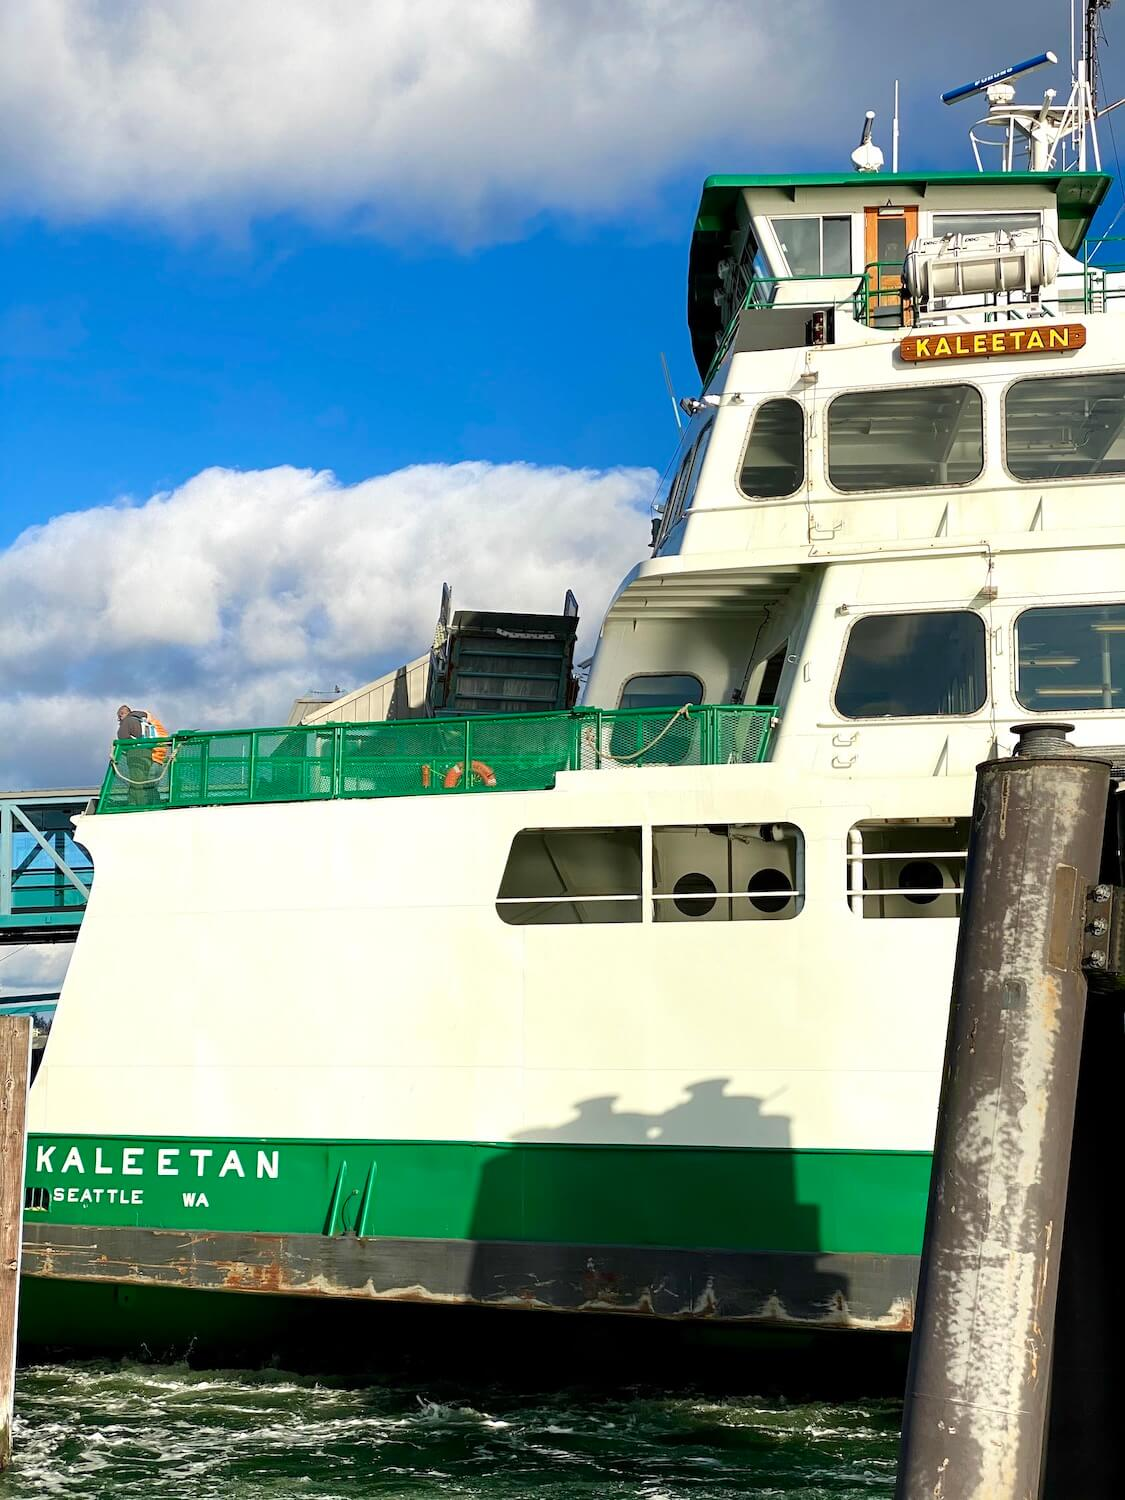 A close of photo of the ferry Kaleetan, sailing into the dock in Bremerton, Washington.  The ferry is white with green accents, including a bright green deck railing.